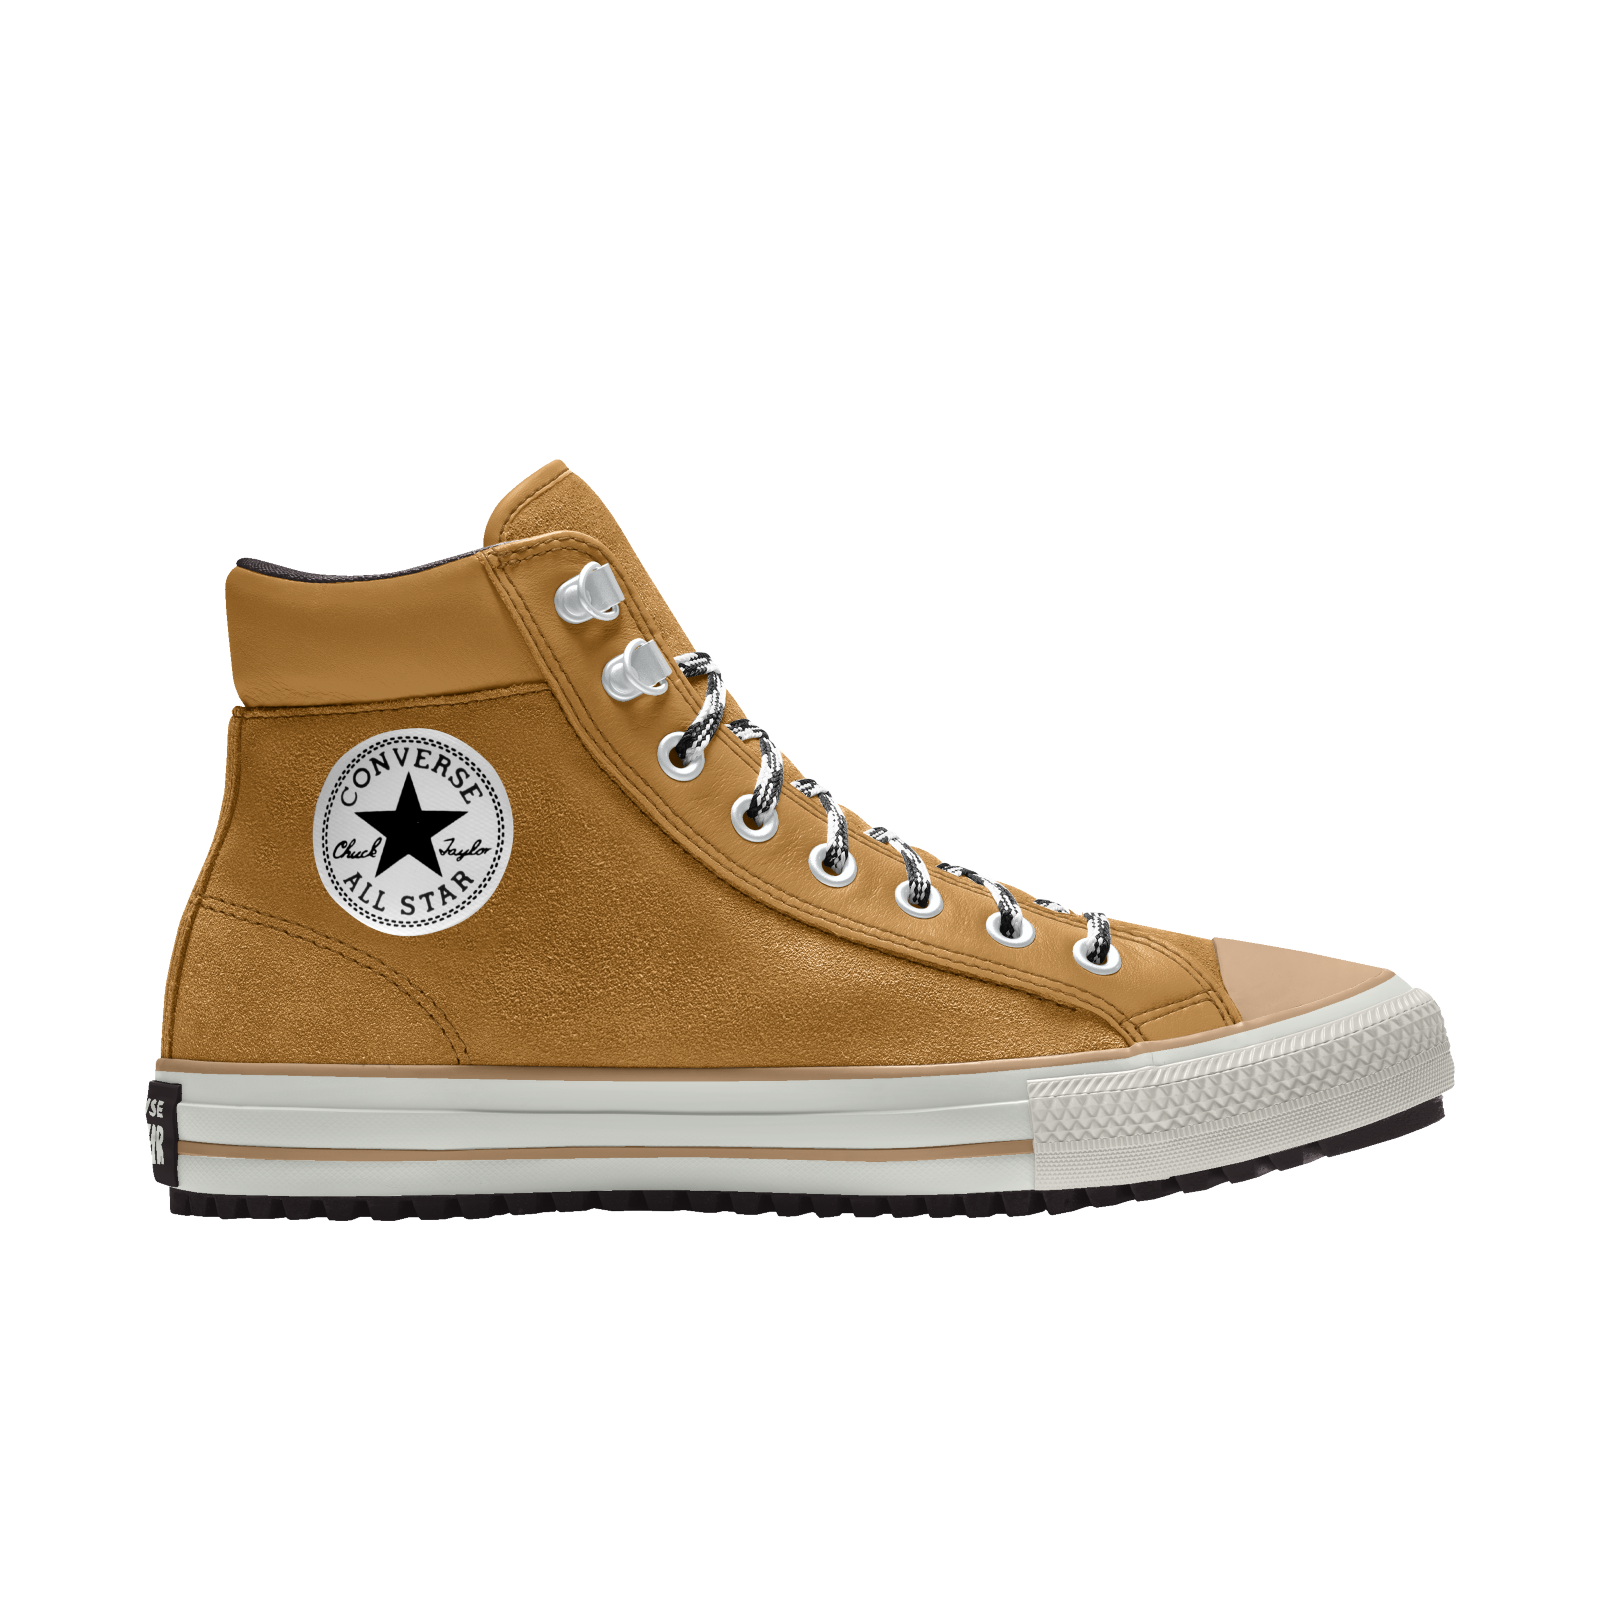 Custom Chuck Taylor PC Boot | Chuck taylor boots, Leather shoes ...